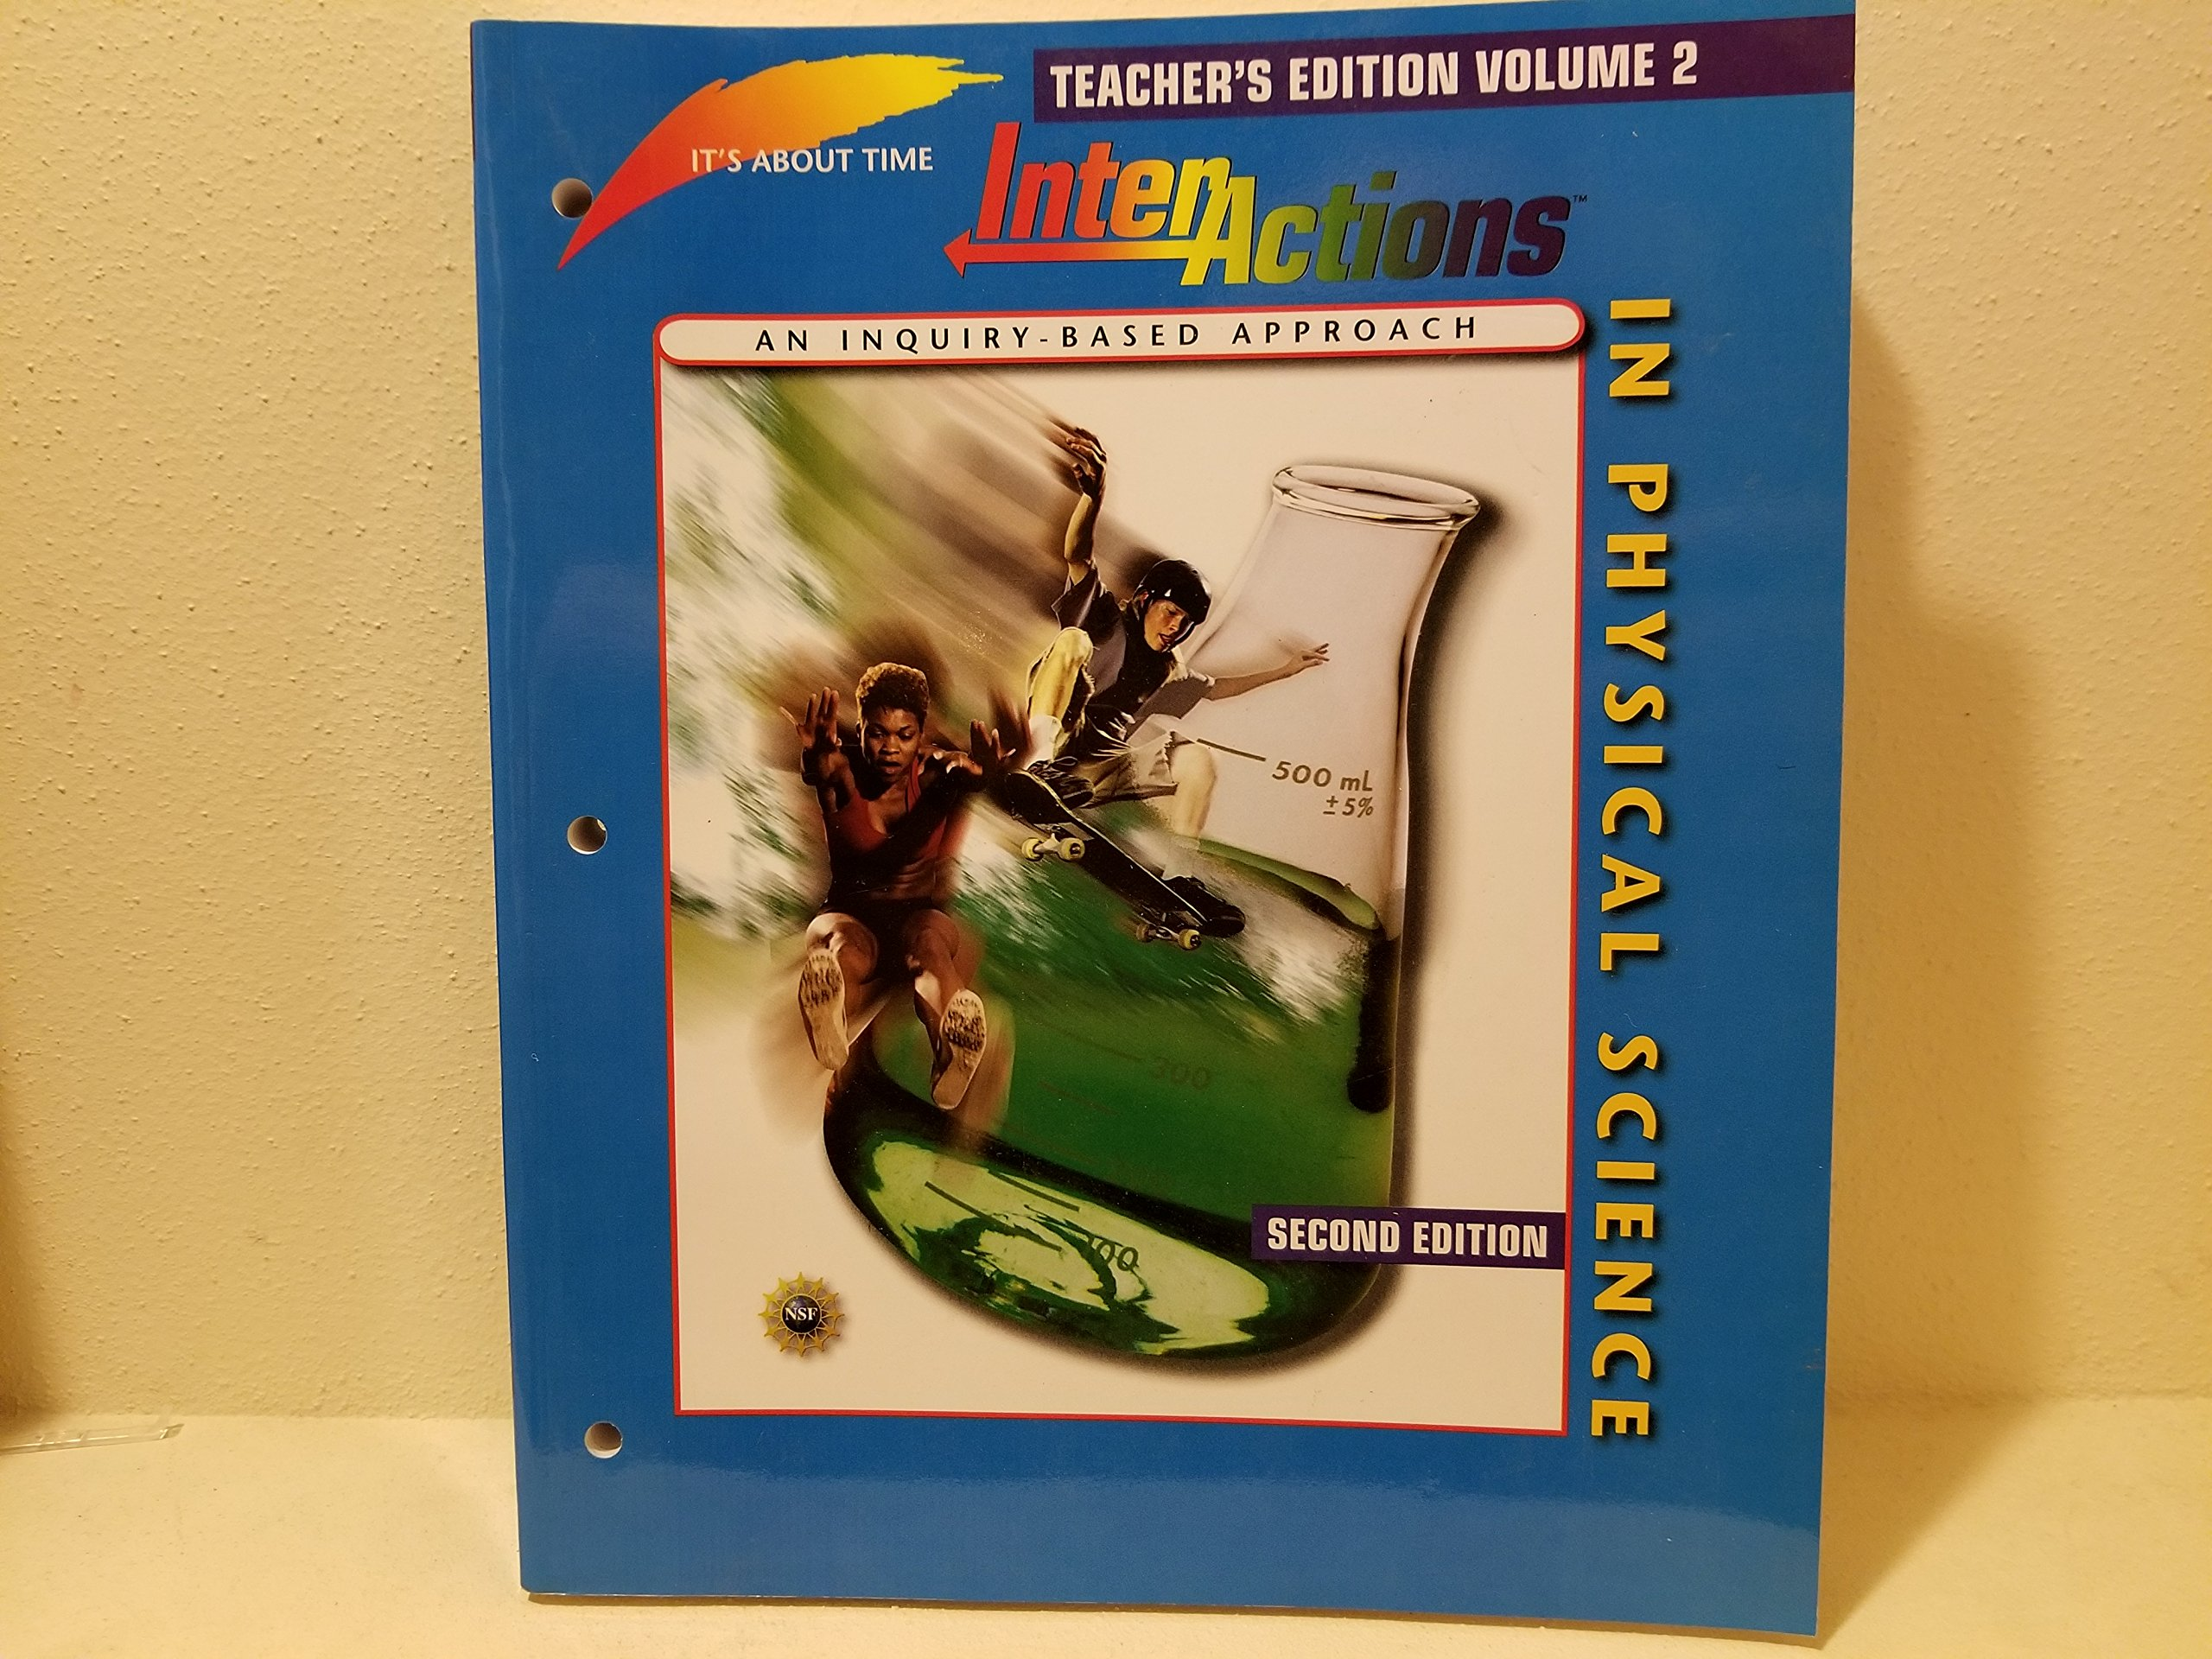 Download InterActions In Physical Science, Second Edition Teacher's Edition Volume 2 (It's About Time) PDF